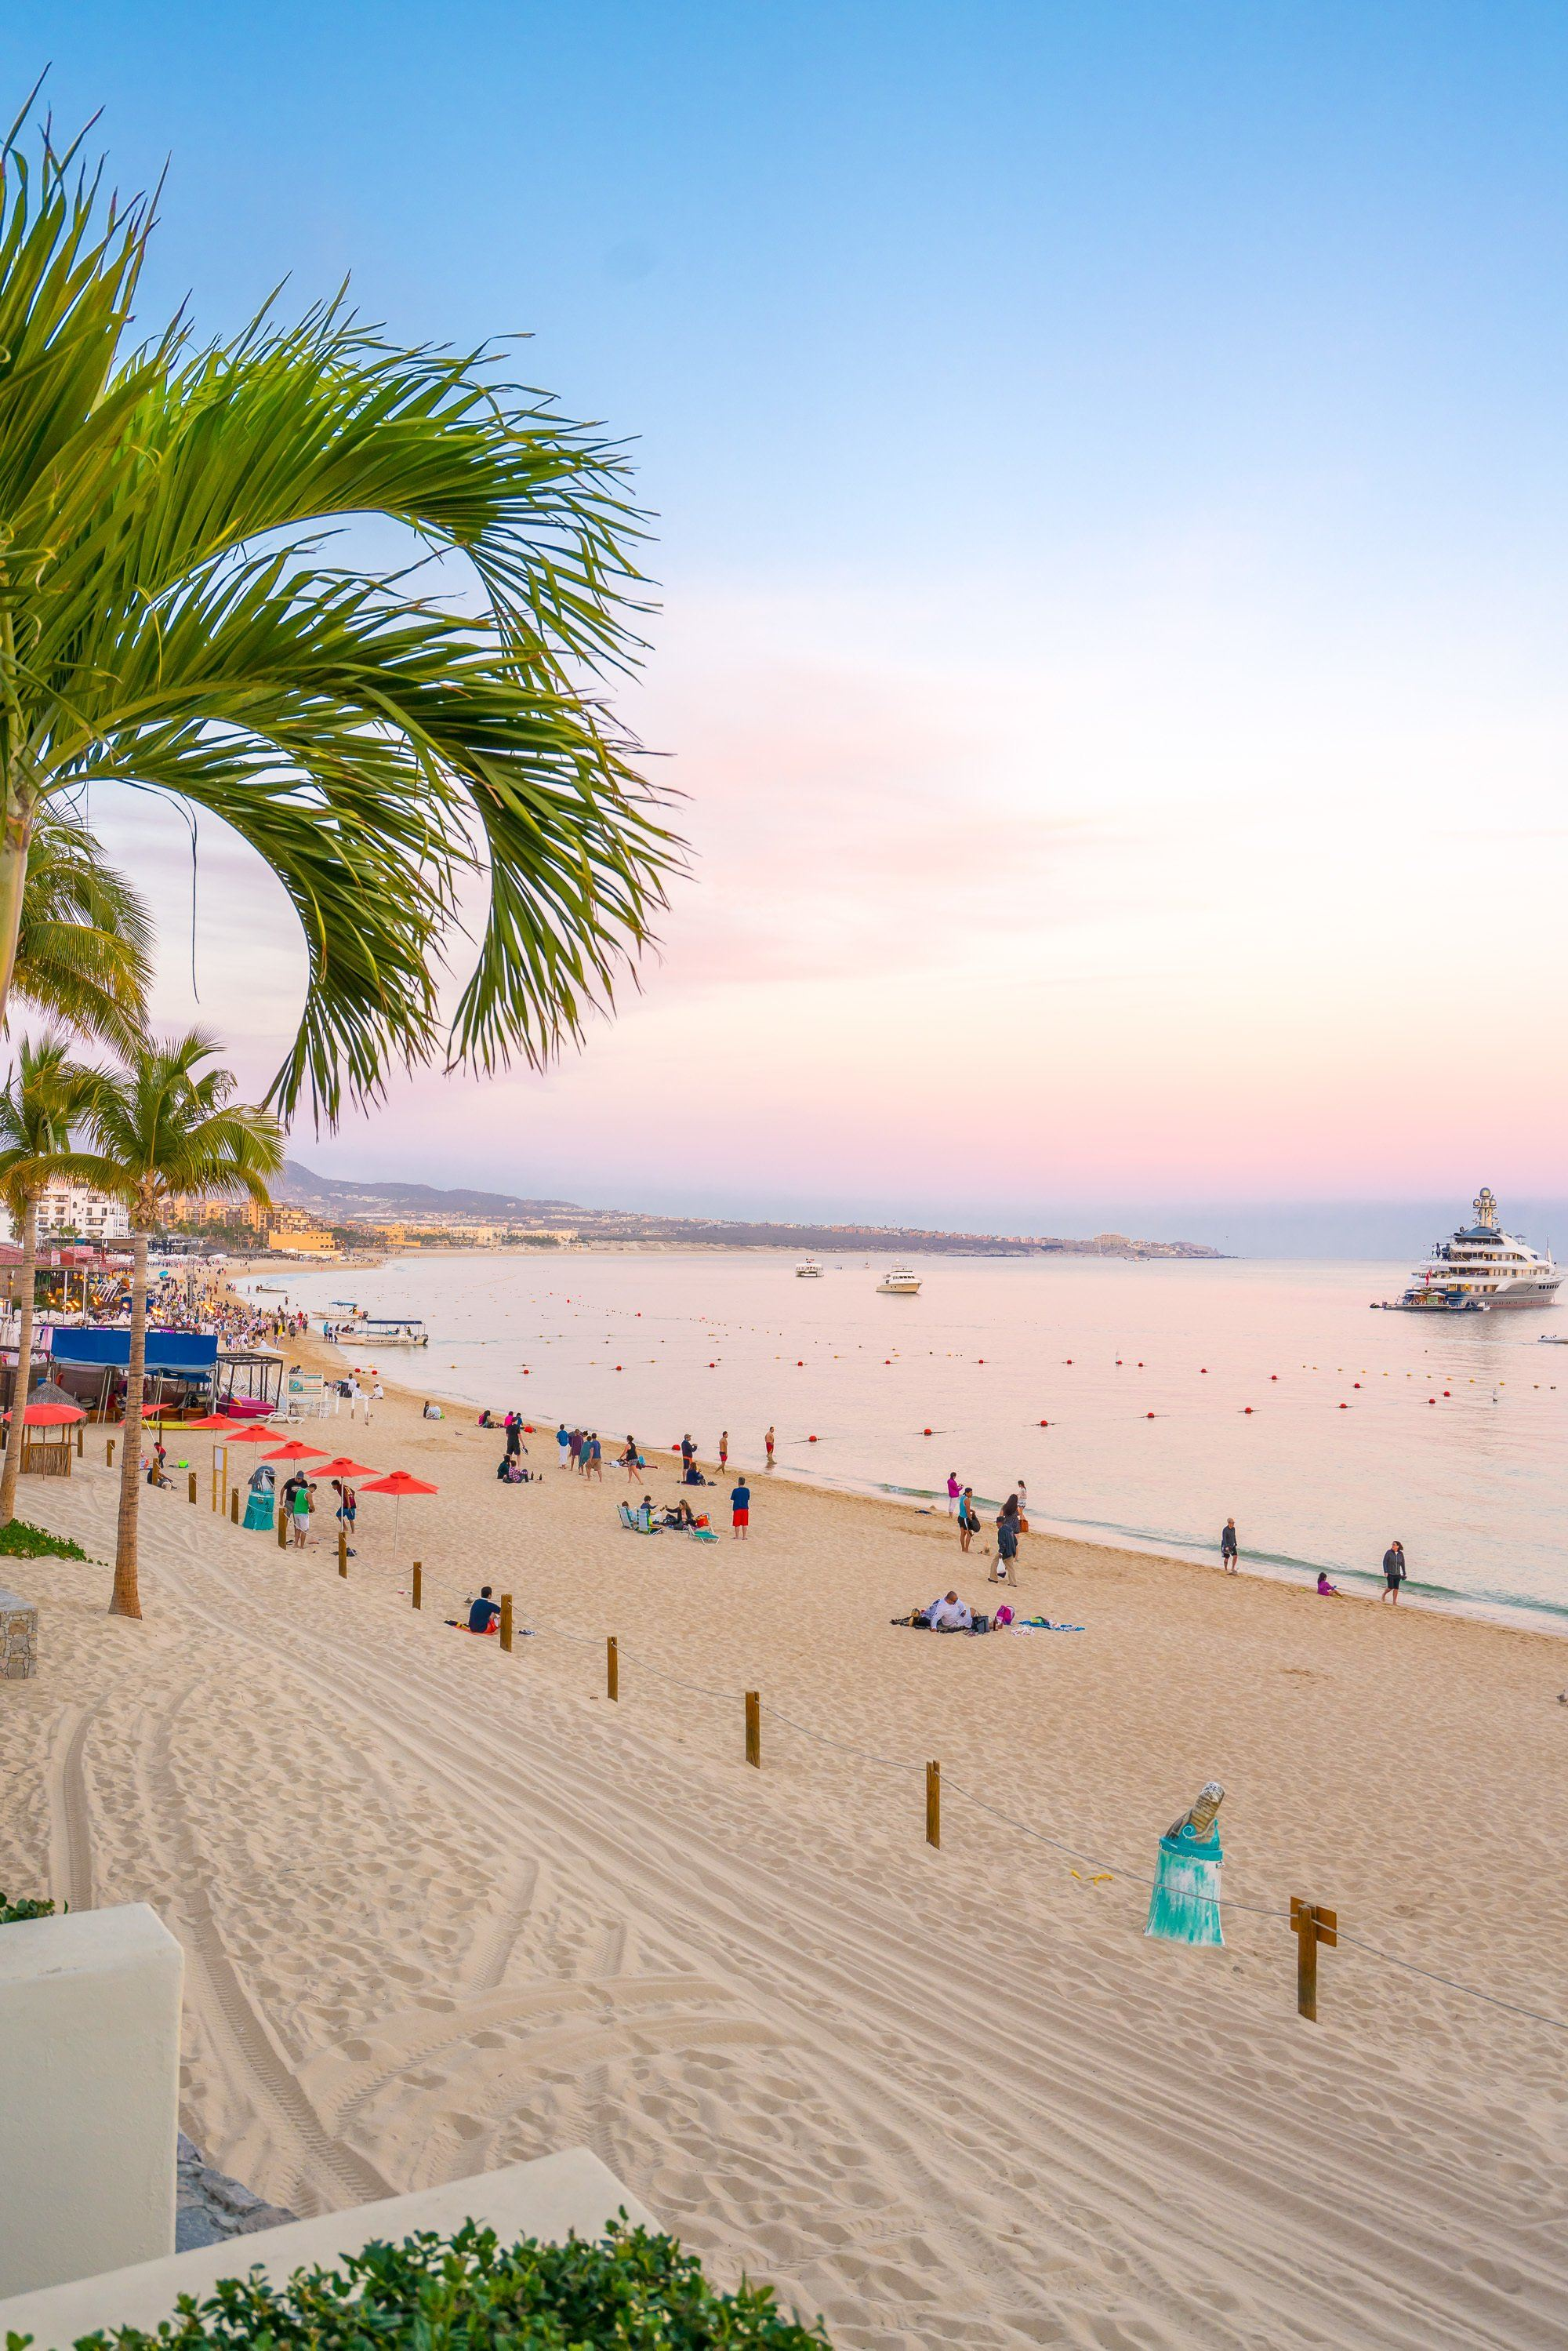 The beach in Cabo San Lucas, Mexico.